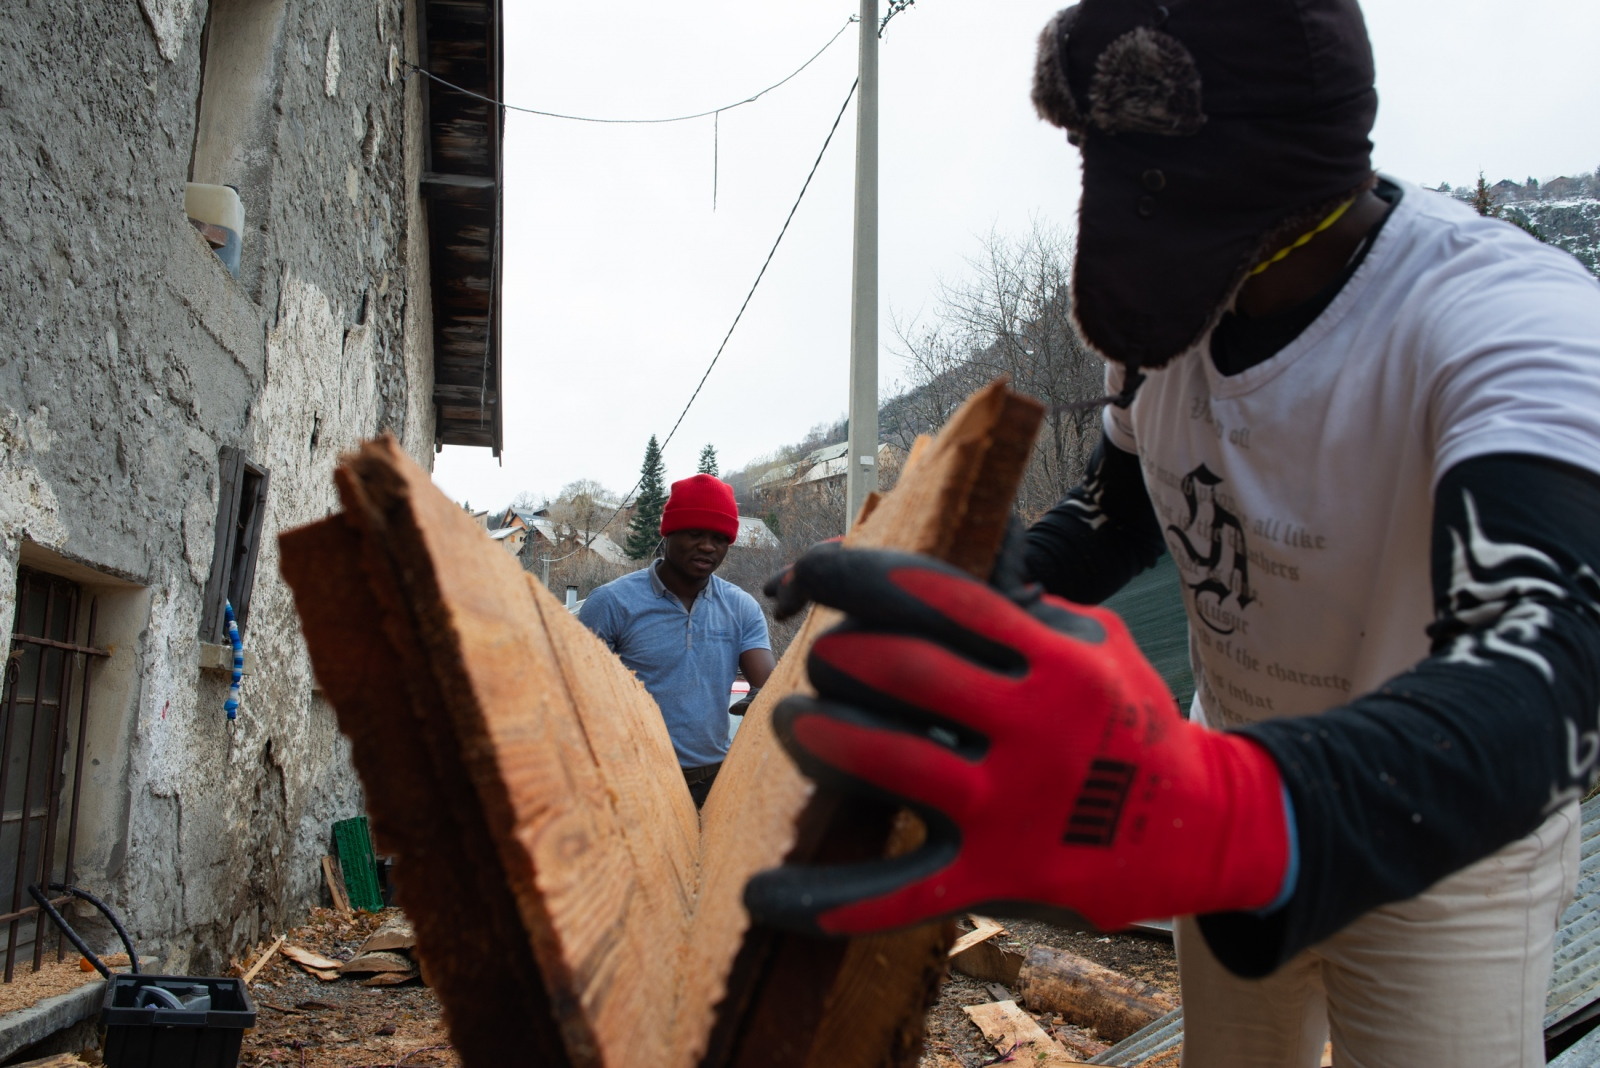 Nigel* and Jacques* are cutting wood for the communal house, Chez Marcel. 15m squared of wood was bought by an ngo and donated to the house where asylum-seekers live. Briançon, France. December 2018.